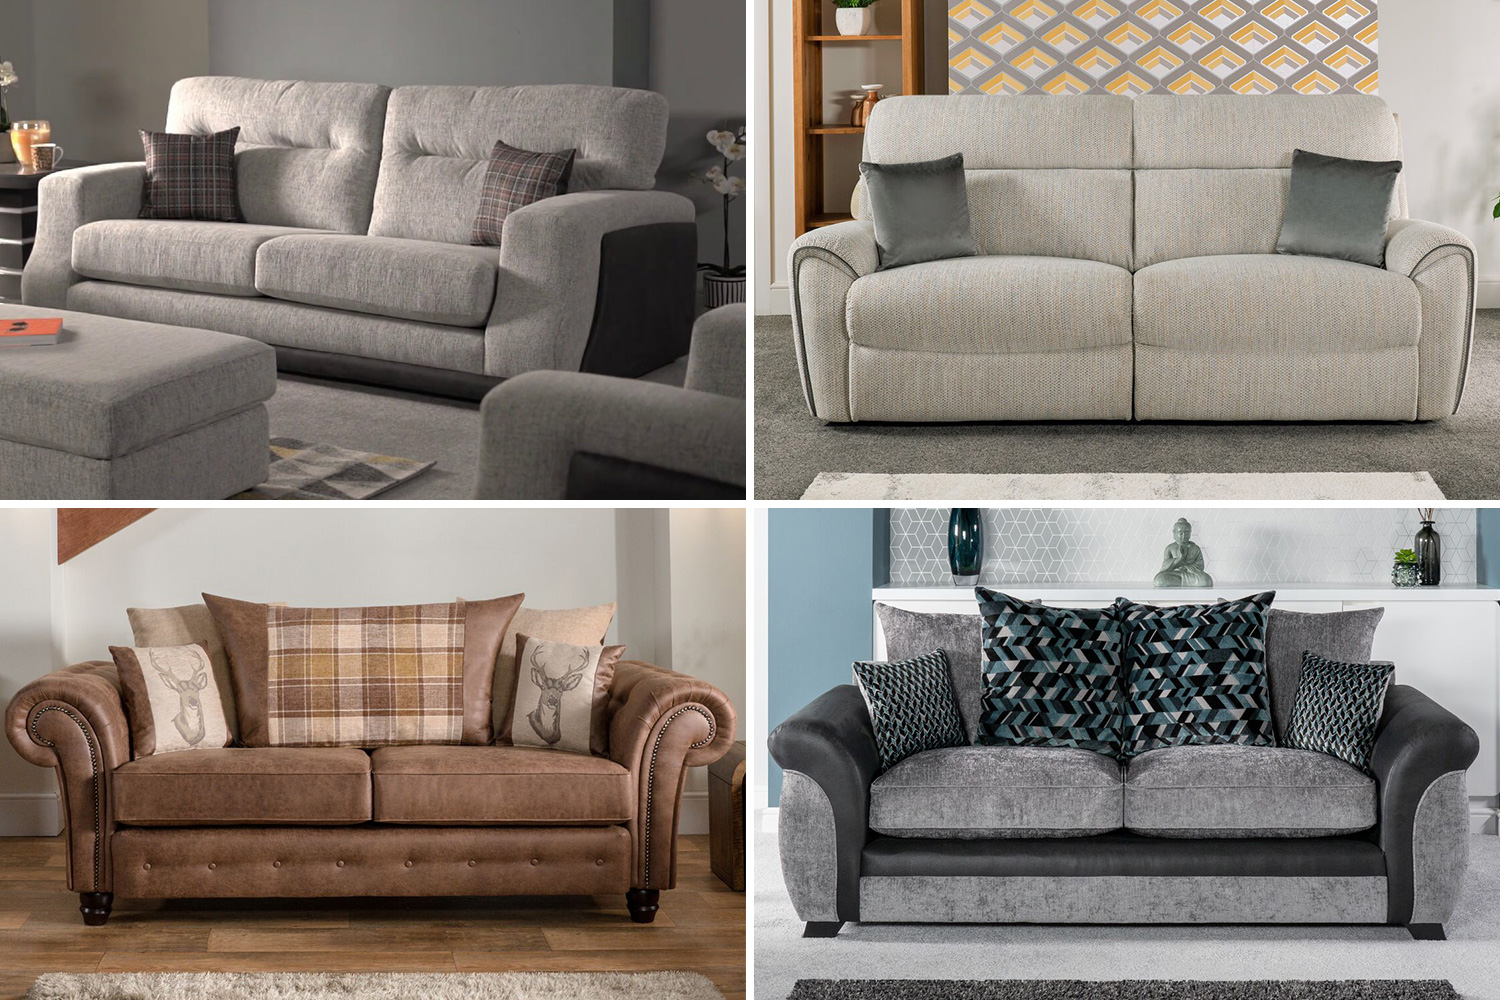 Prices will be slashed on sofas at ScS this Black Friday